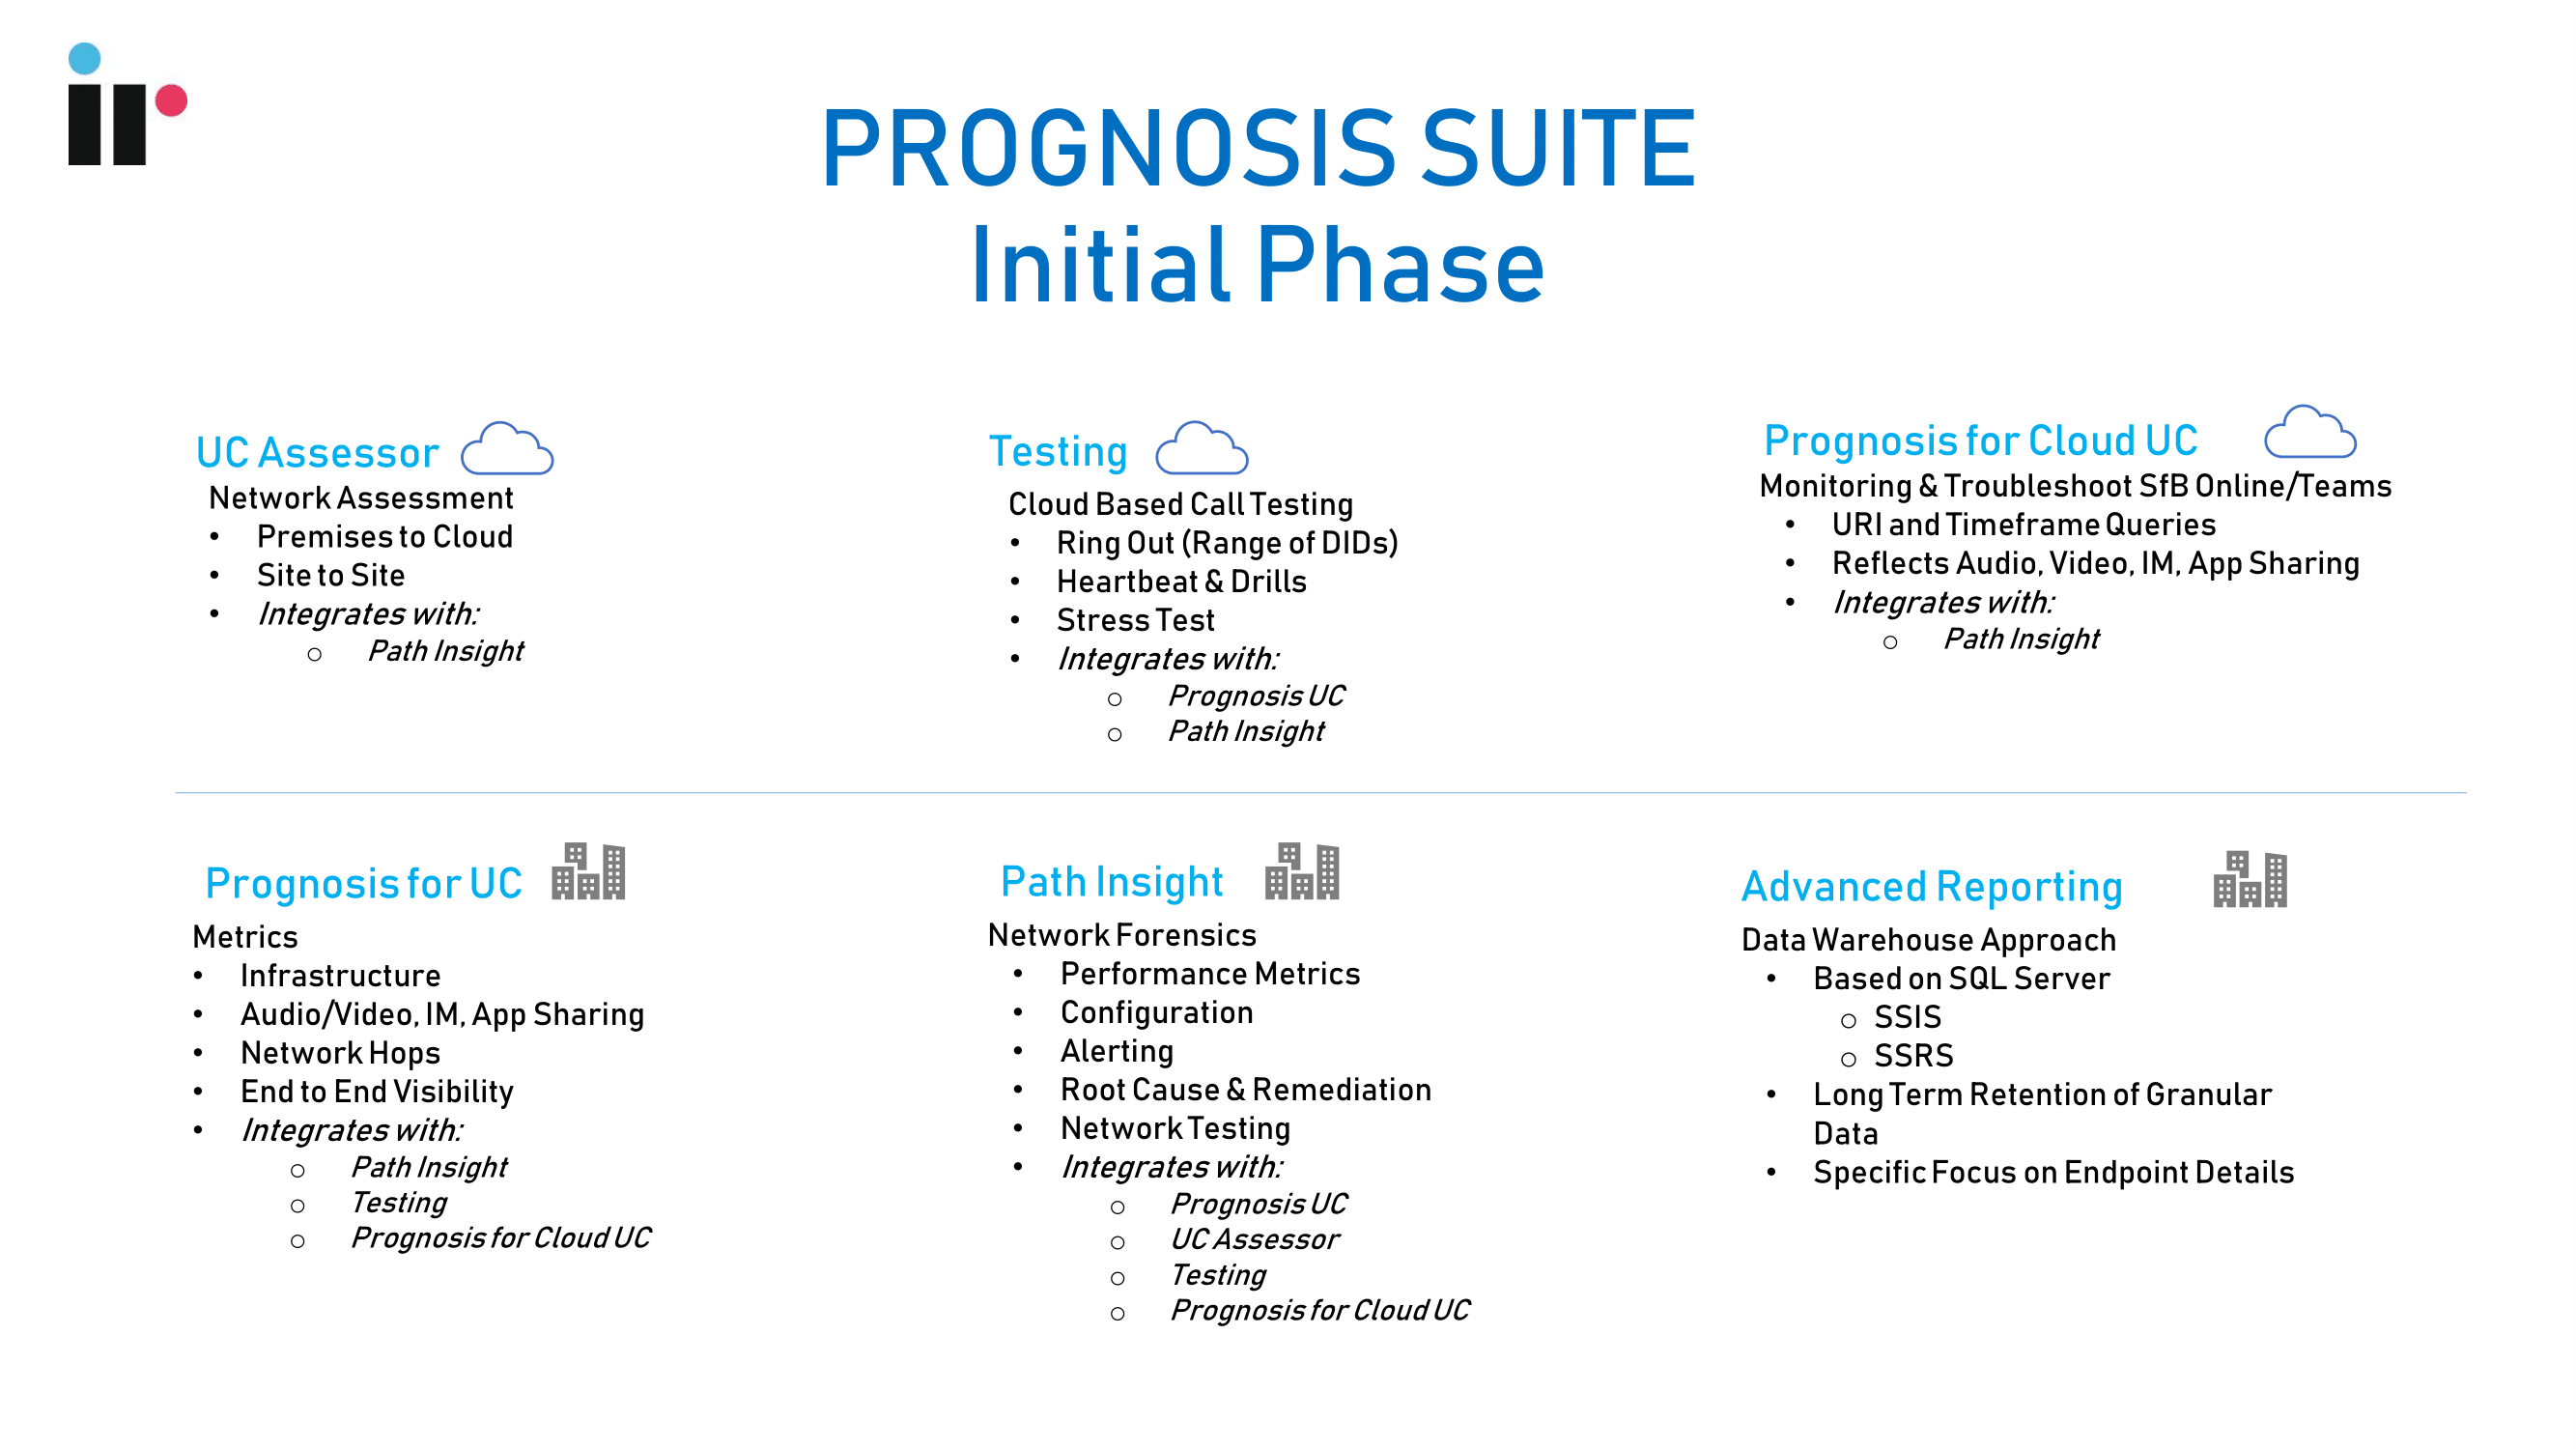 Prognosis suite for different Microsoft Teams deployment phases